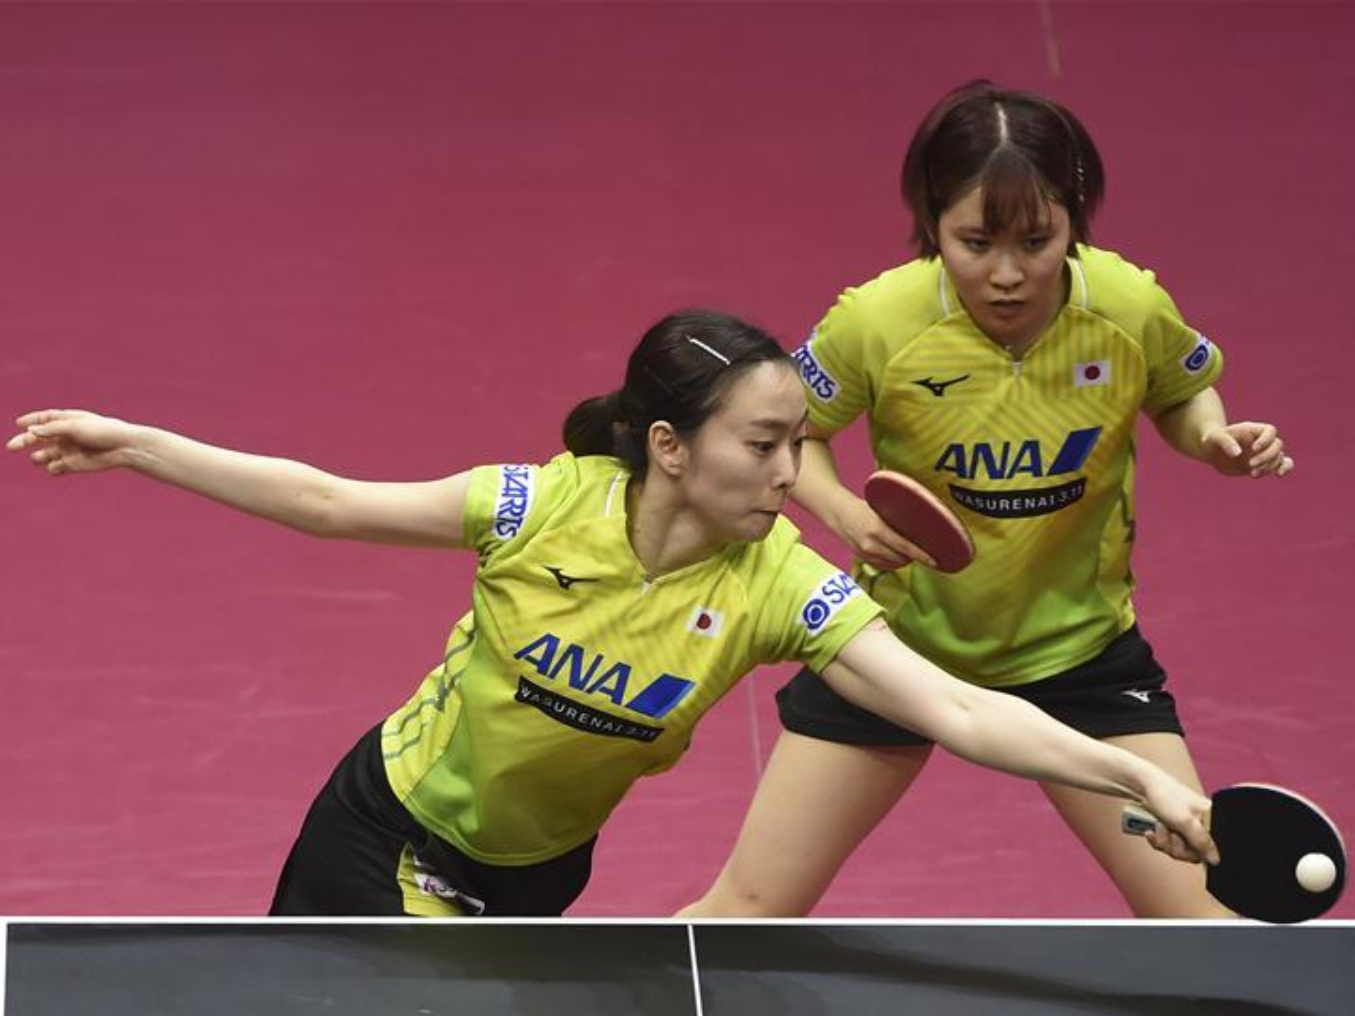 Highlights of doubles seimifinal matches at 2020 ITTF Qatar Open